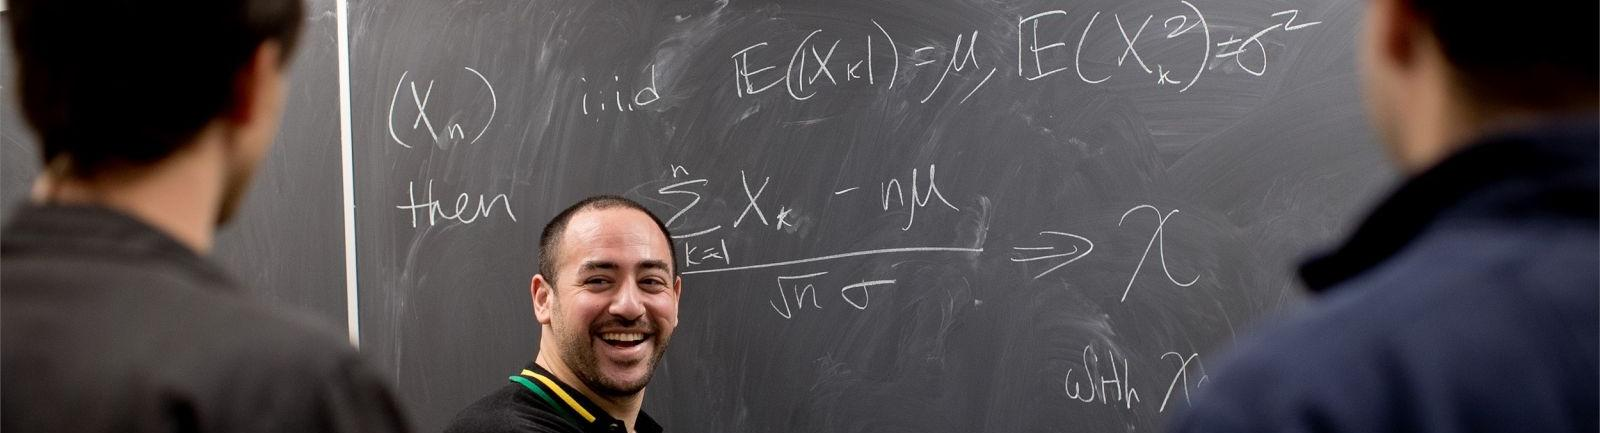 Temple students and faculty work hand in hand to solve complex problems